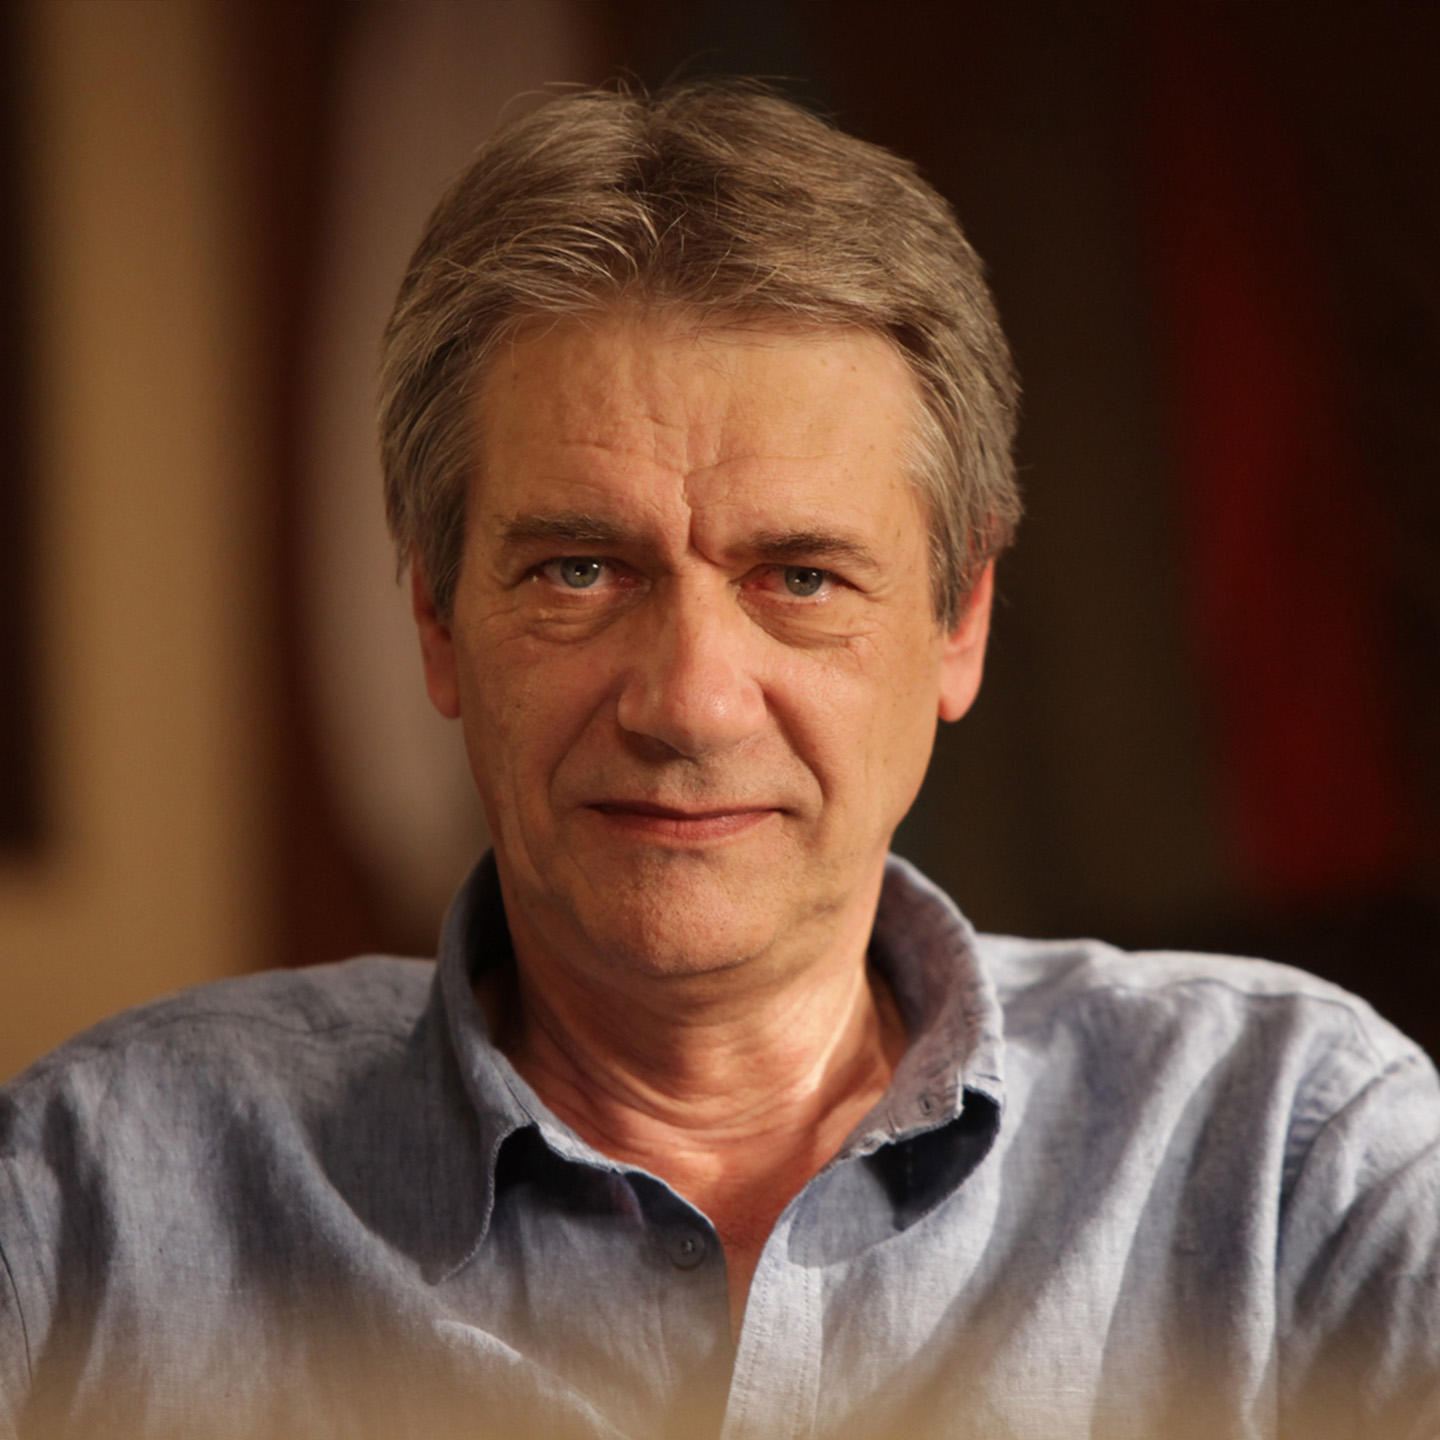 Marcel Iureș to receive the Excellence Award at TIFF 2019